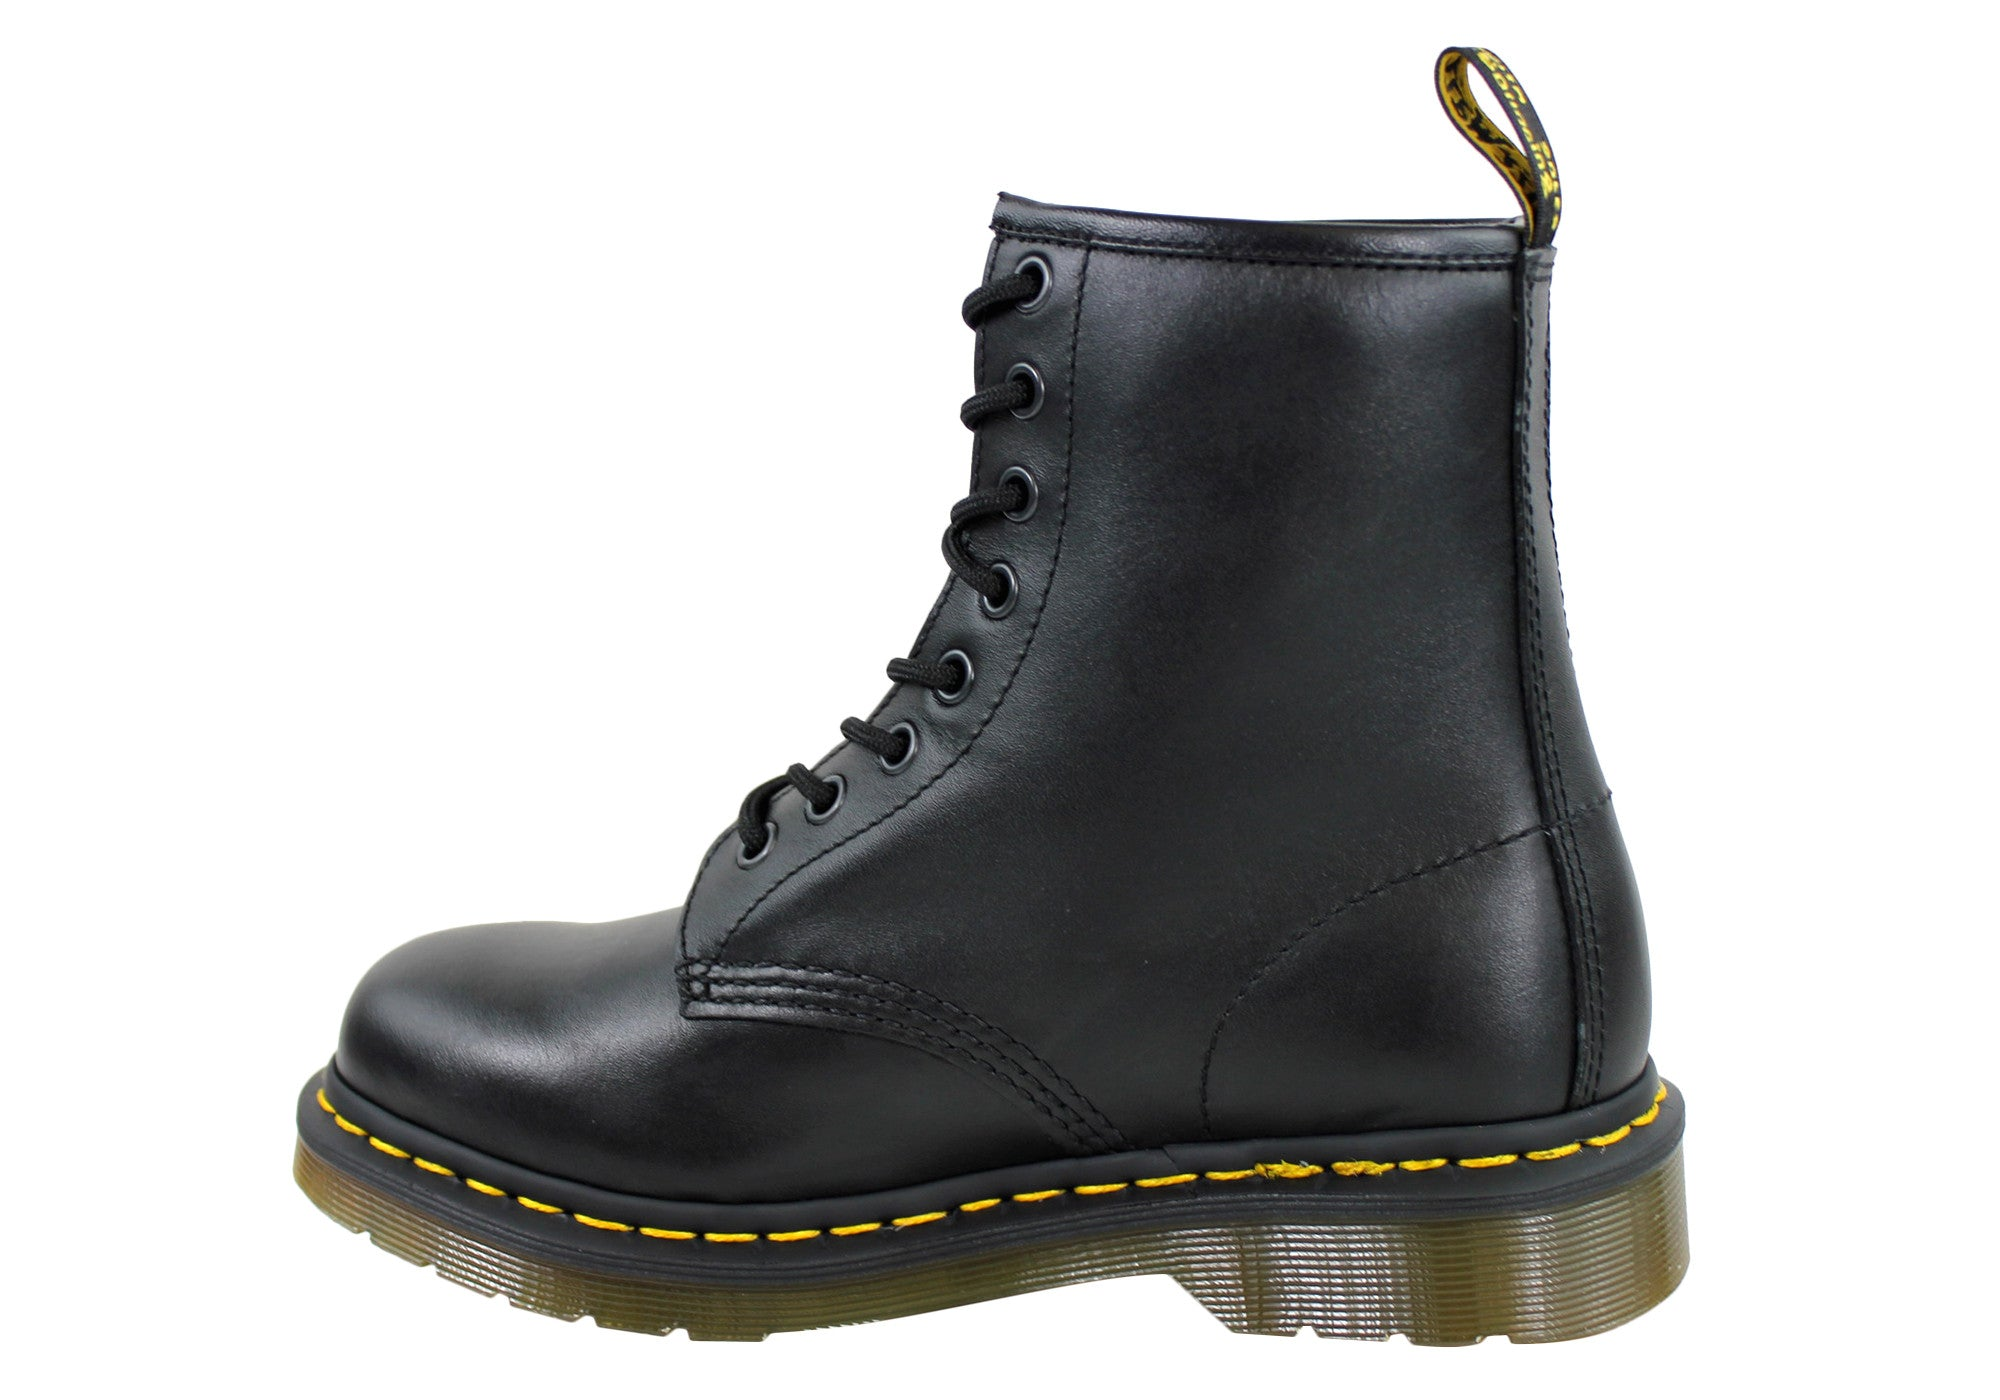 Dr Martens 1460 Black Nappa Unisex Boots